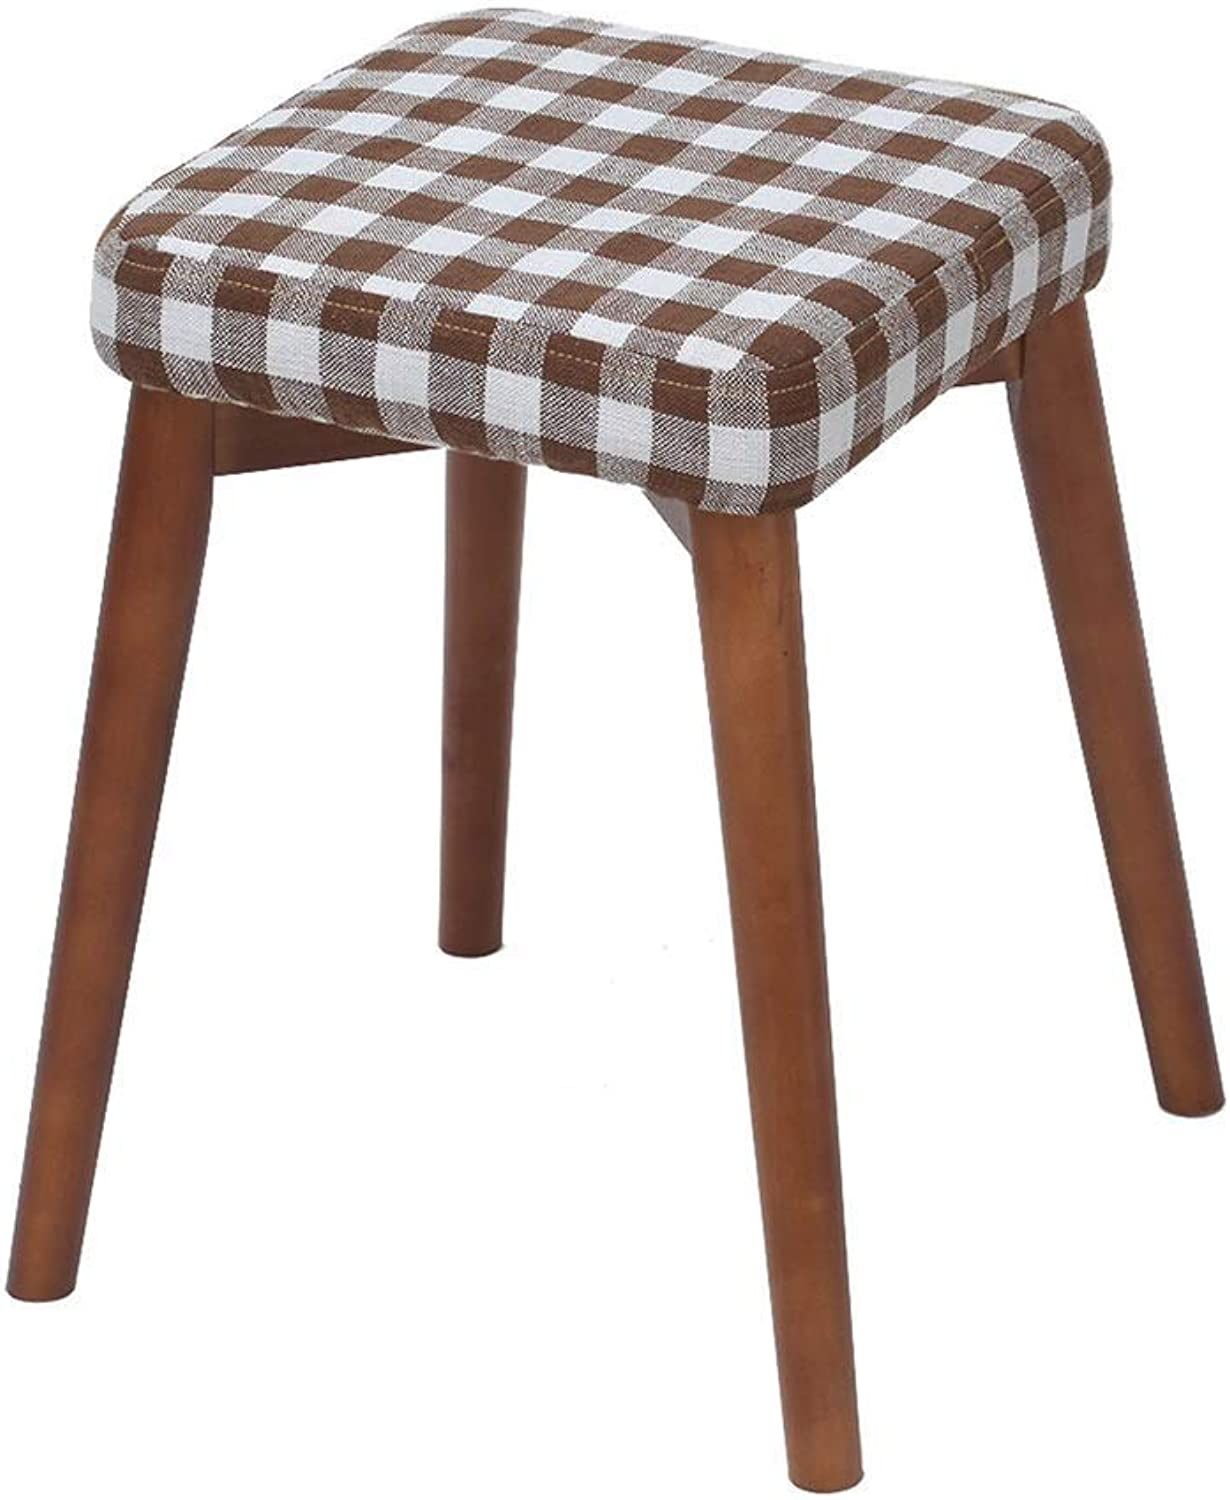 Makeup DressingSolid Wood Creative Fabric Stool Fashion Bench Modern Simple Home Adult Dining Stool High Resilience Sponges Seat HENGXIAO (color   Brown)